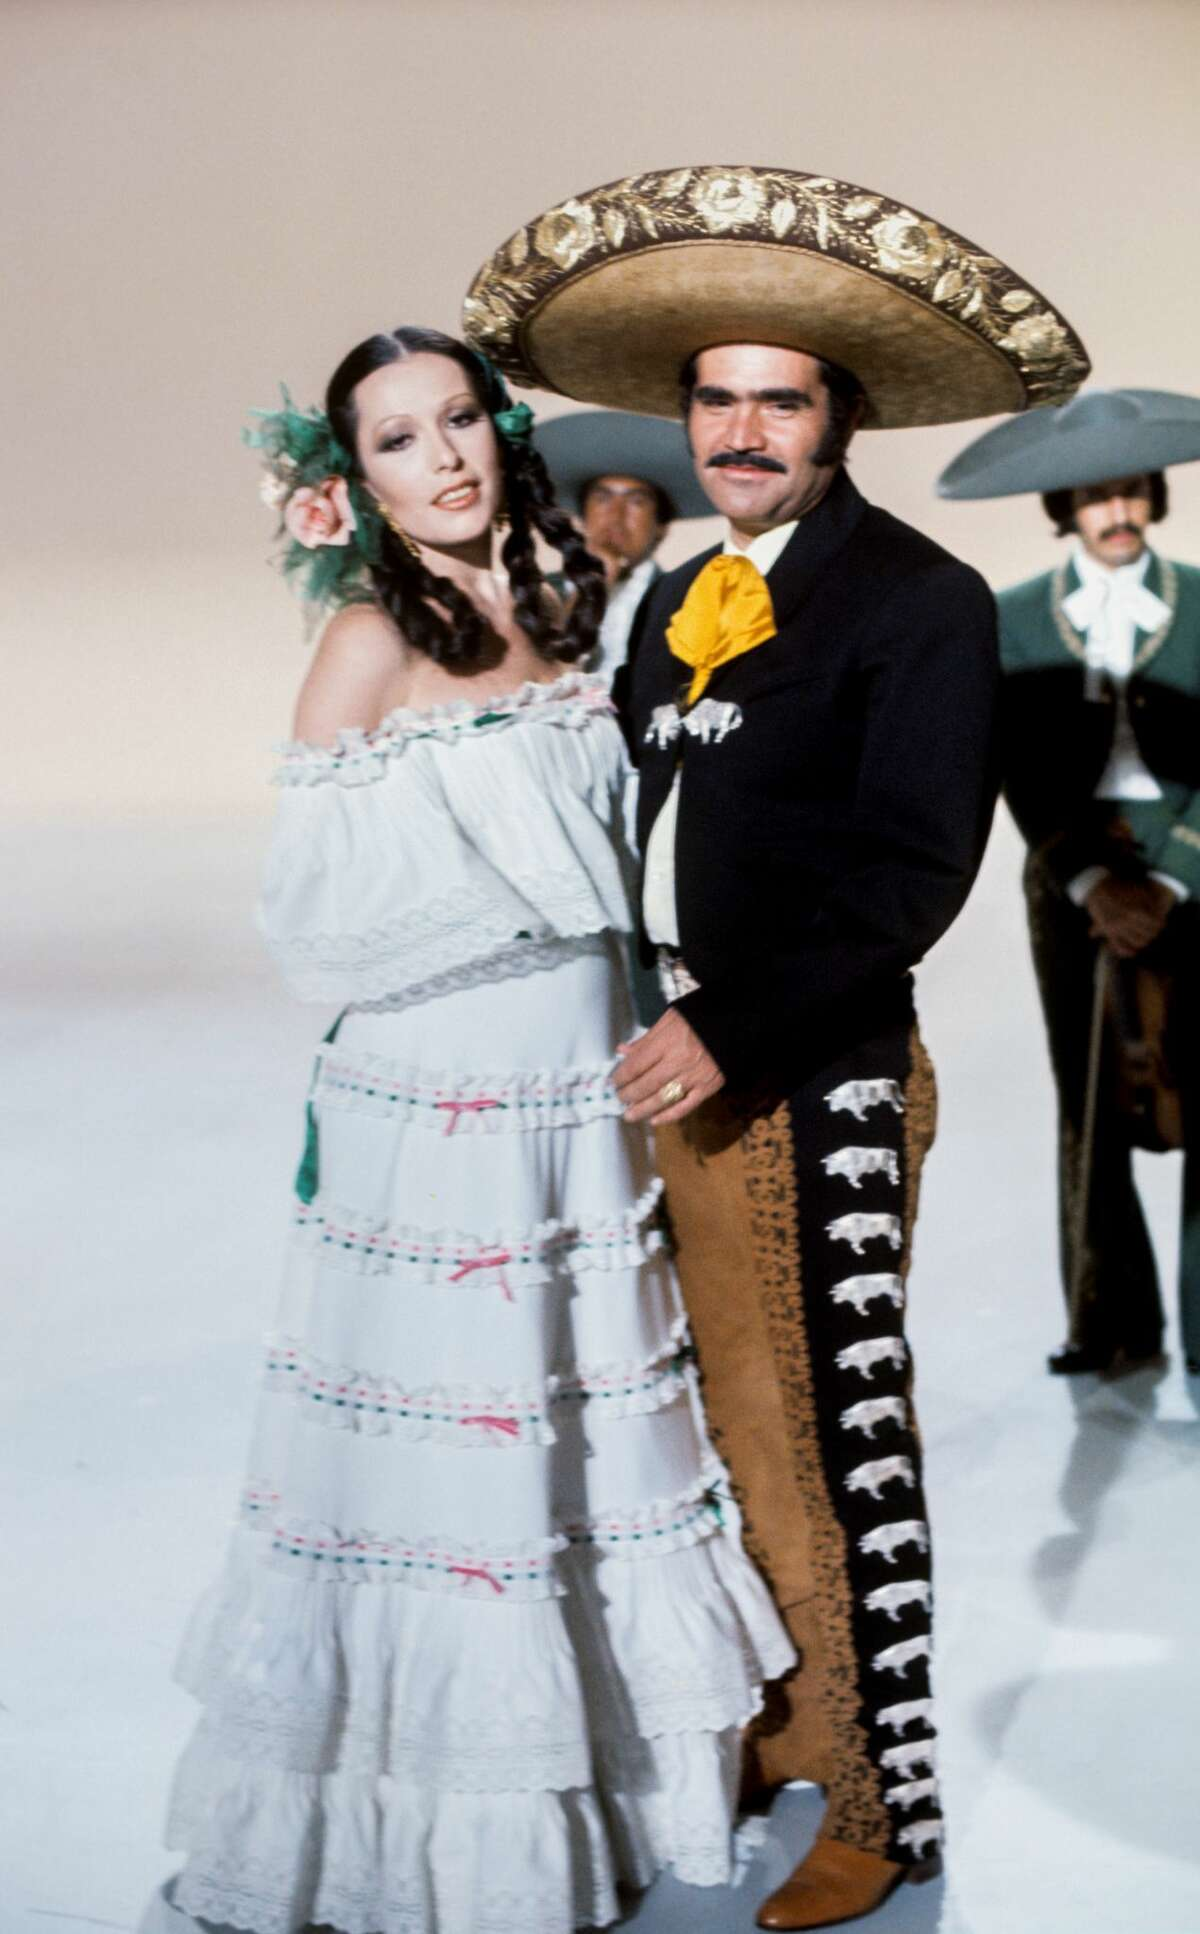 The Mexican singer Vicente Fernandez and Spanish singer Massiel, 1976, Madrid, Spain. (Photo by Gianni Ferrari/Cover/Getty Images).